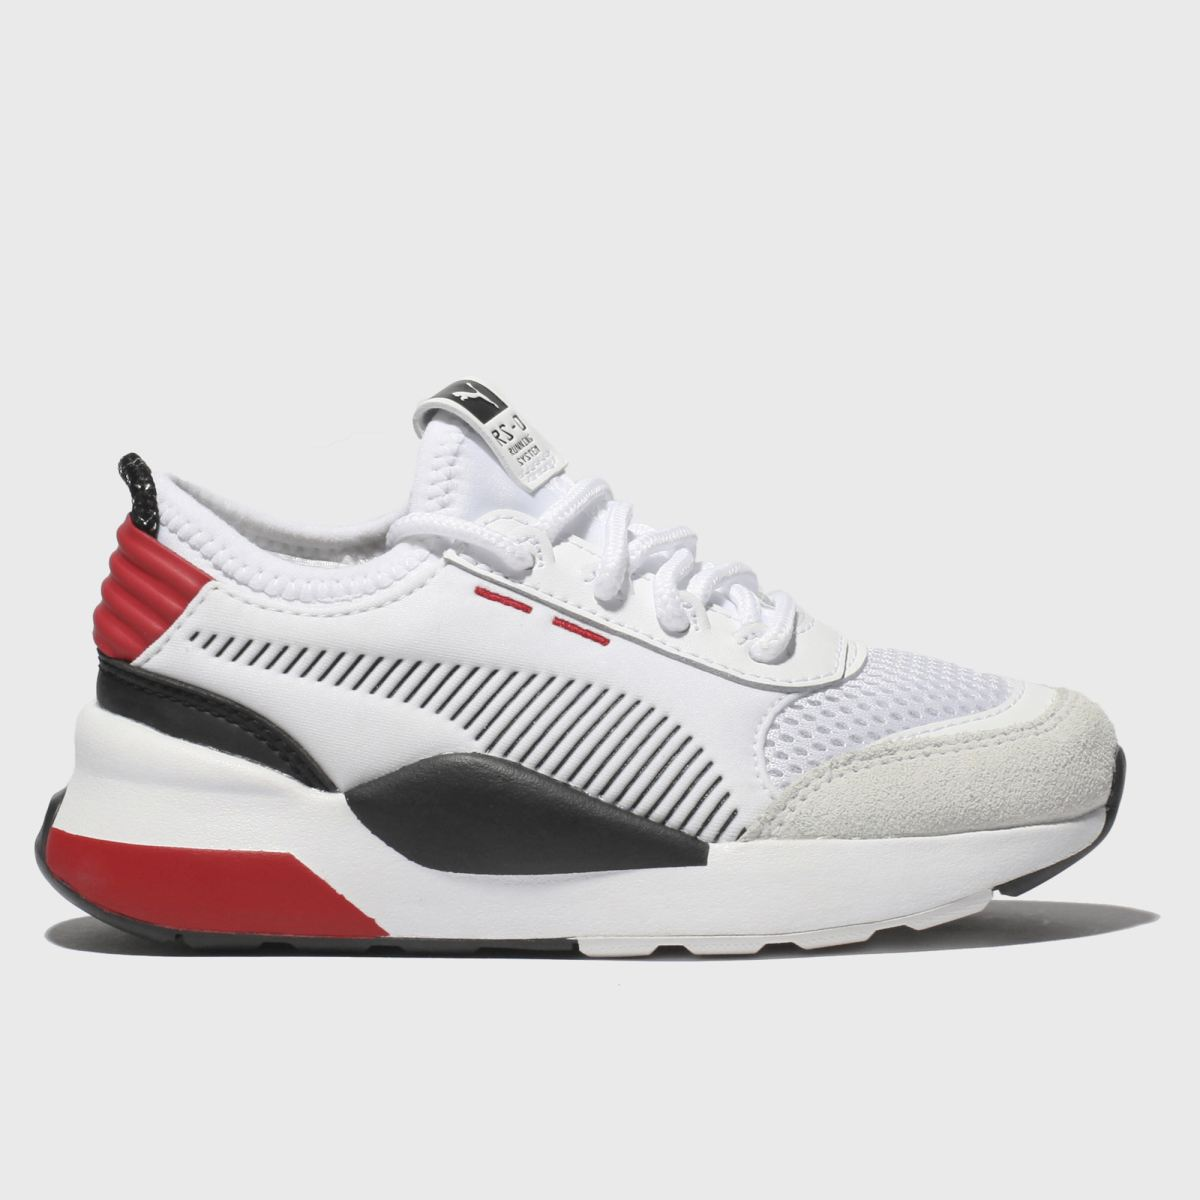 Puma White & Red Rs-0 Wtr Inj Toys Trainers Junior